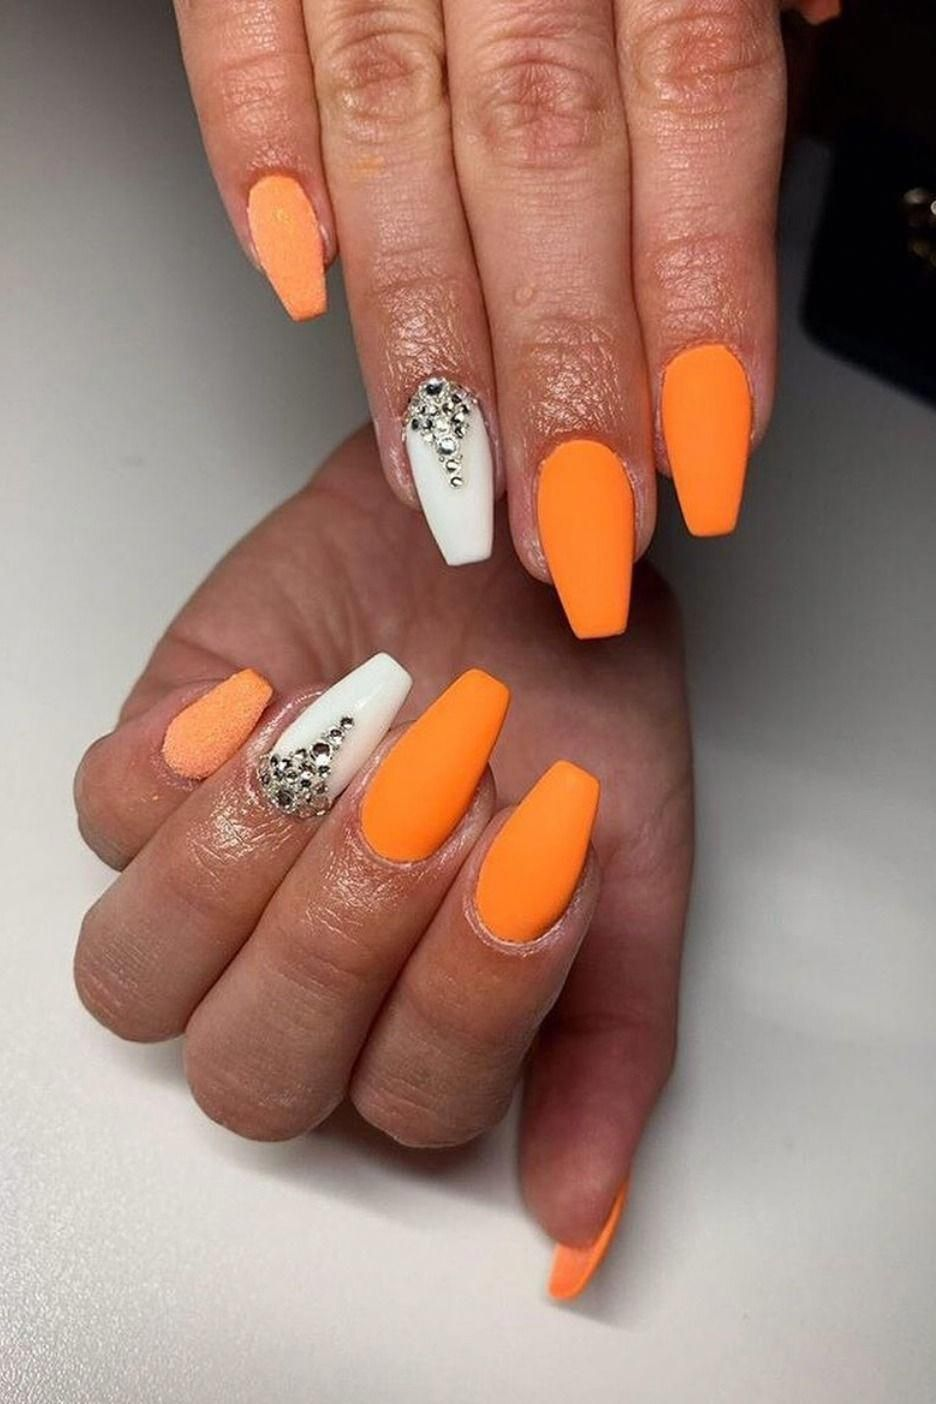 Amazing Neon Orange Coffin Nails Design With White Accent Nail Adorned With Rhinestones For Summertime 2019 Sun In 2020 Coffin Nails Designs Nail Designs Accent Nails